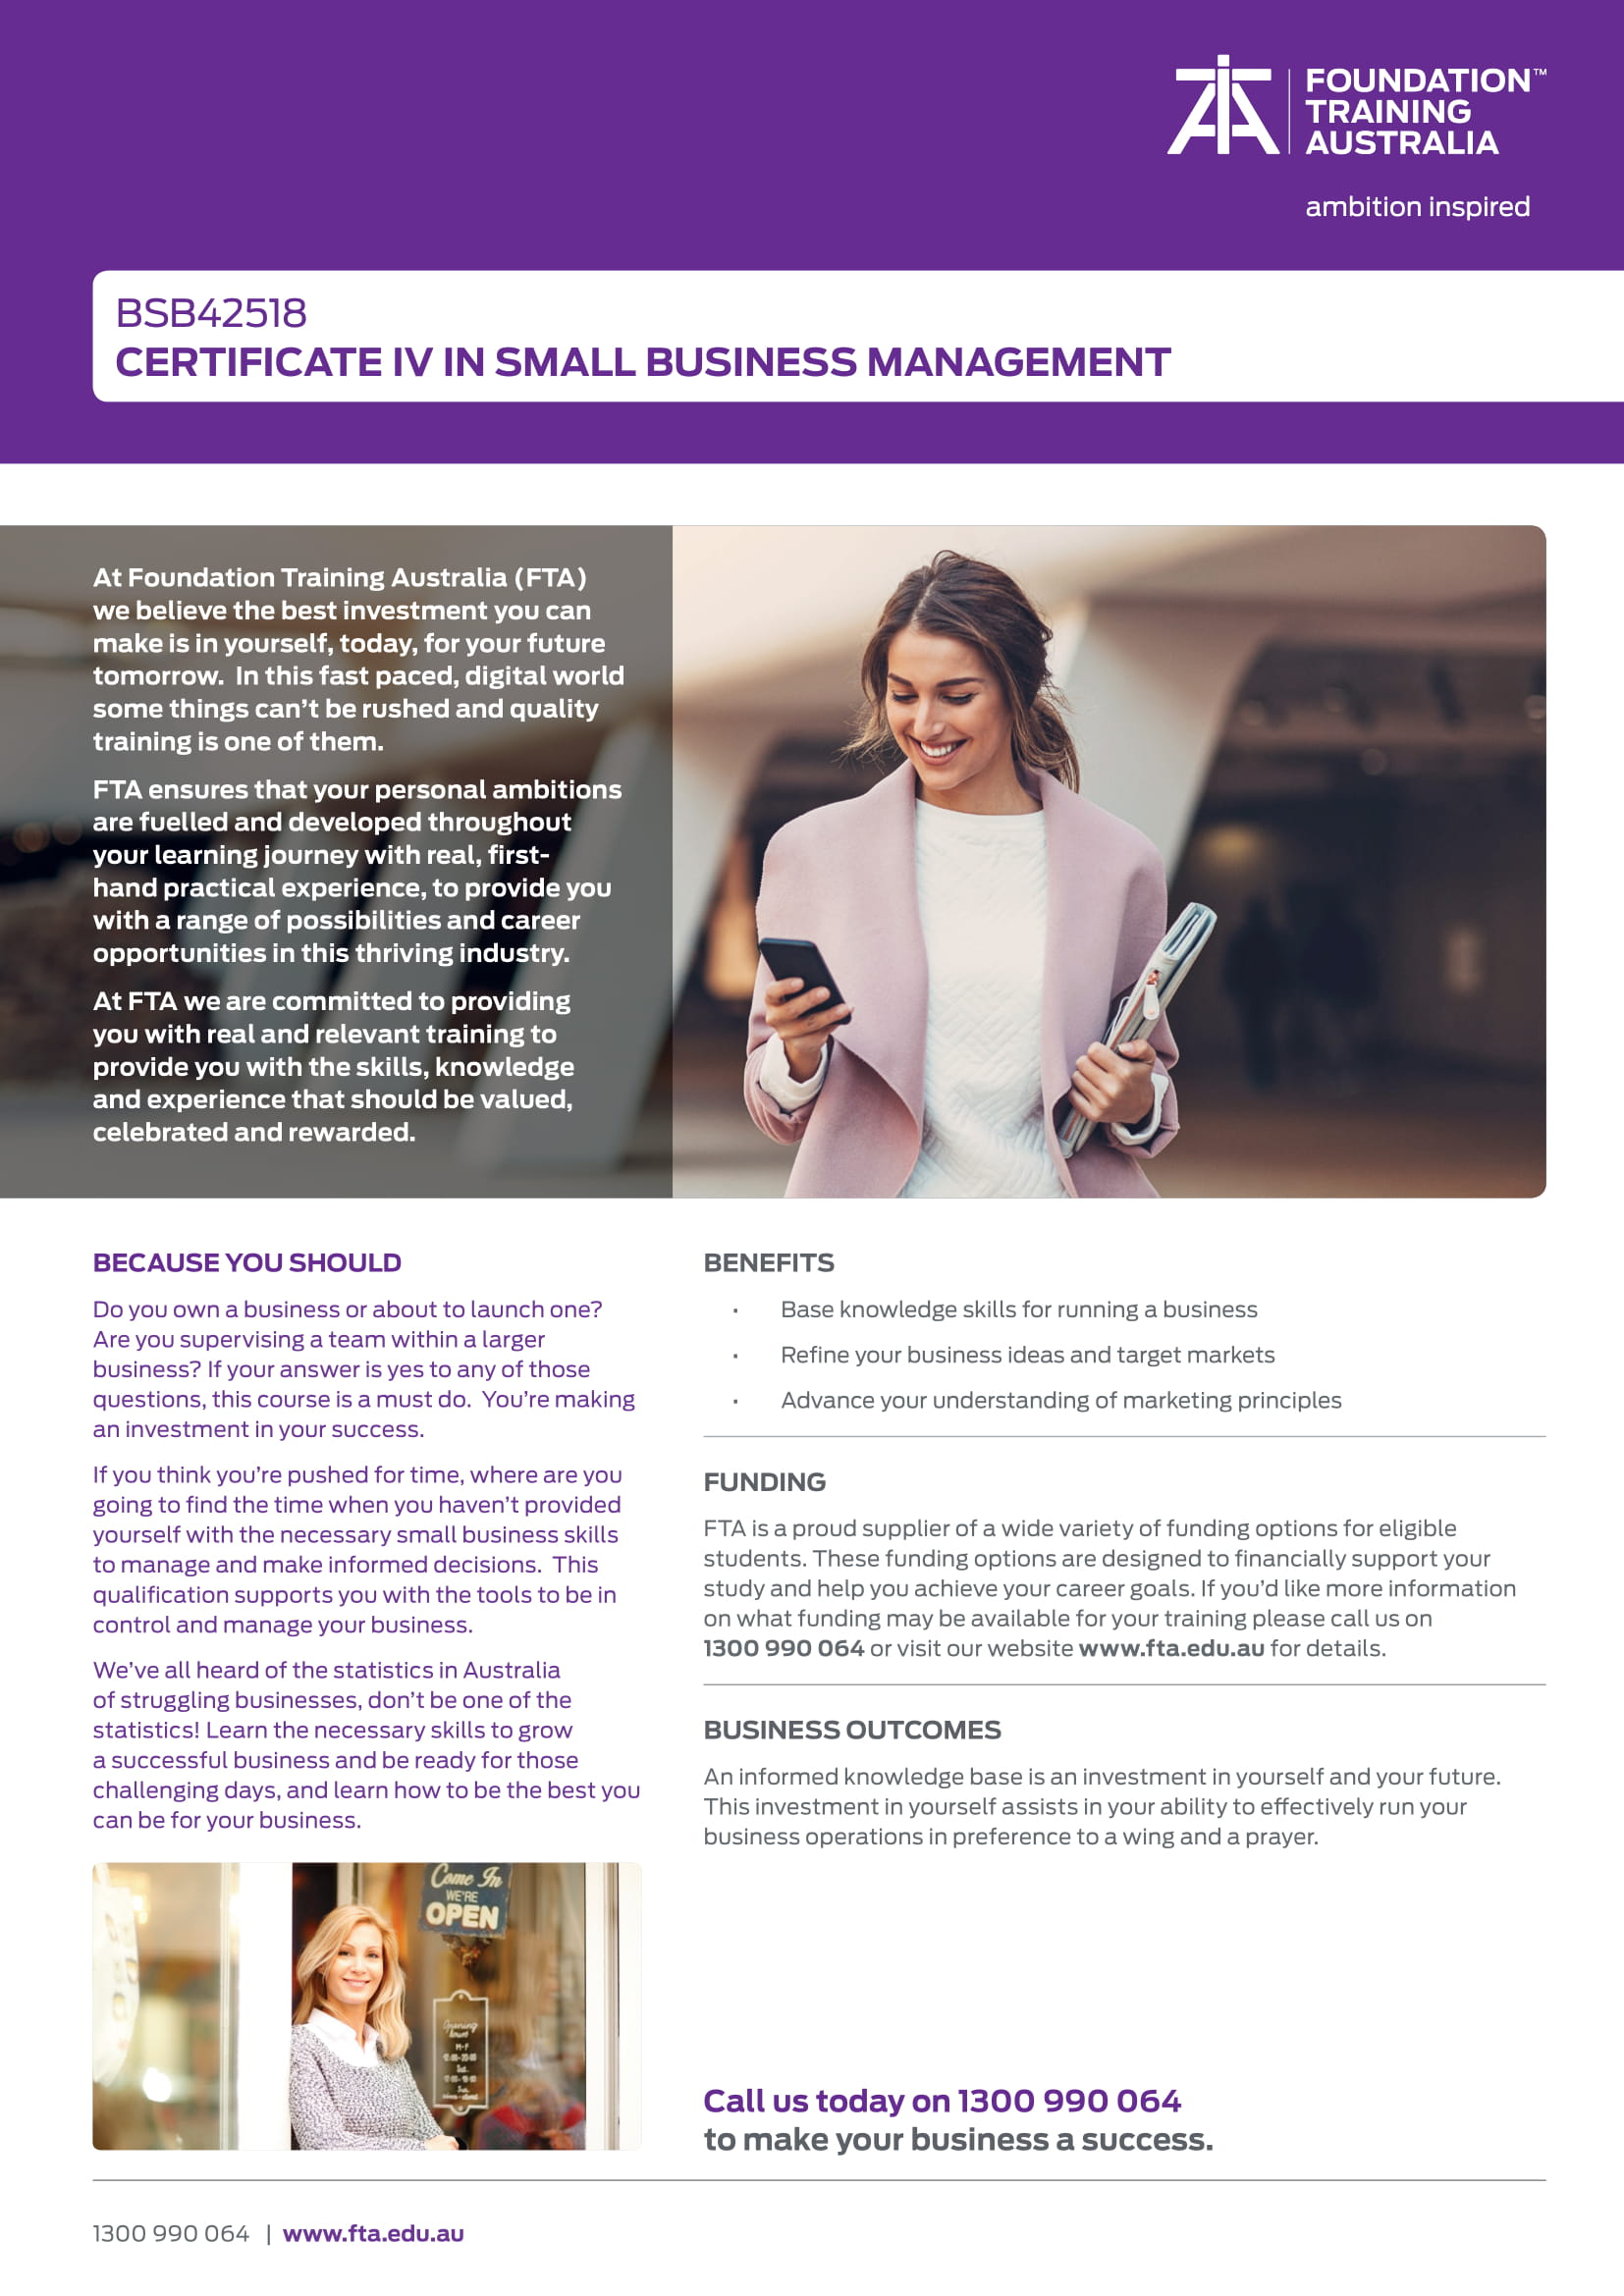 https://www.fta.edu.au/wp-content/uploads/2020/06/TP1.MK_.088-Certificate-IV-in-Small-Business-Management-Course-Flyer-BSB42518-V1-PRESS-1.jpg